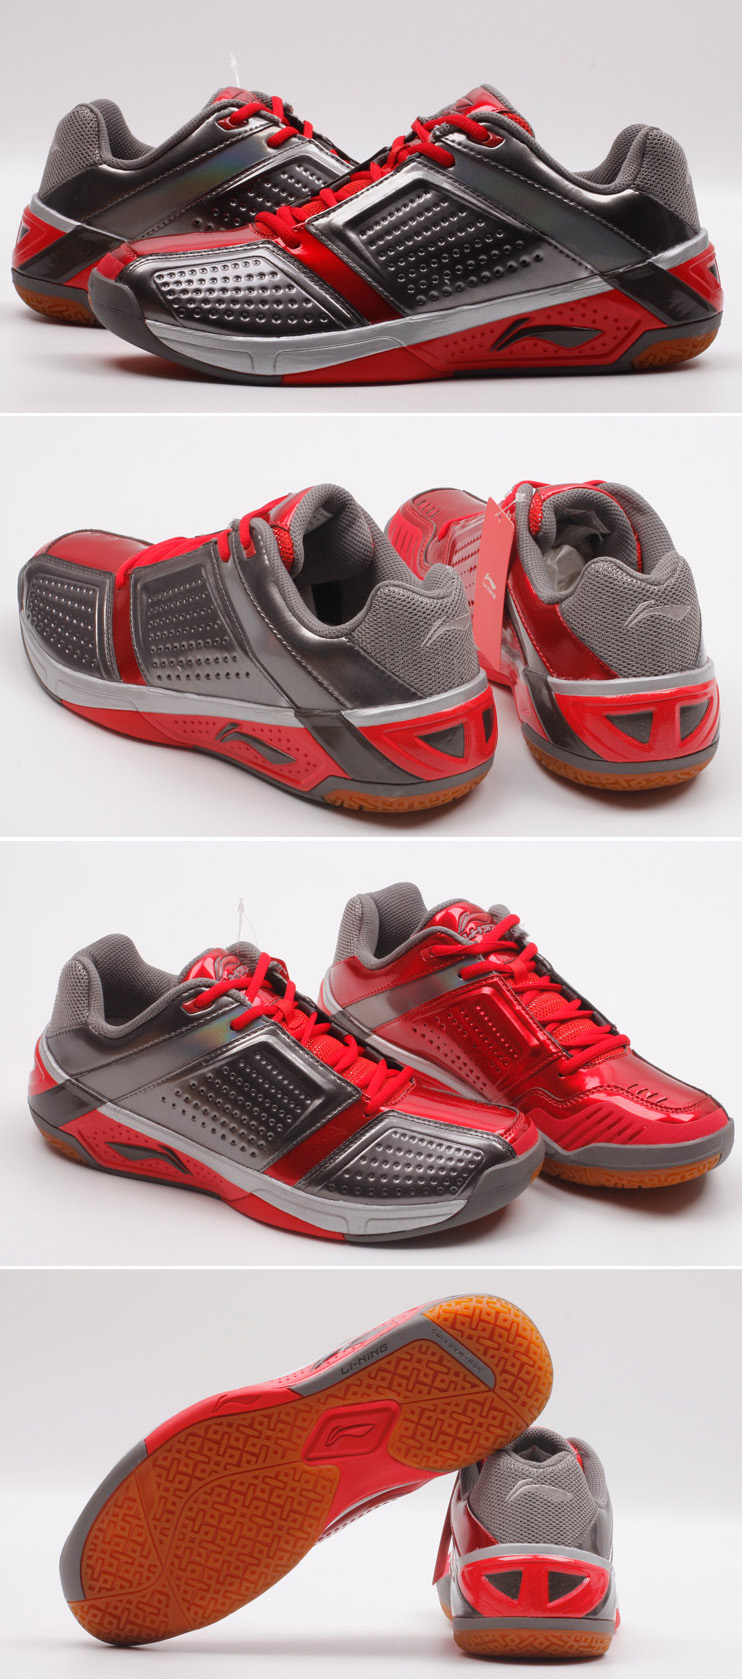 Lin Dan Hero TD Men's Badminton Shoes [AYTL019-3]